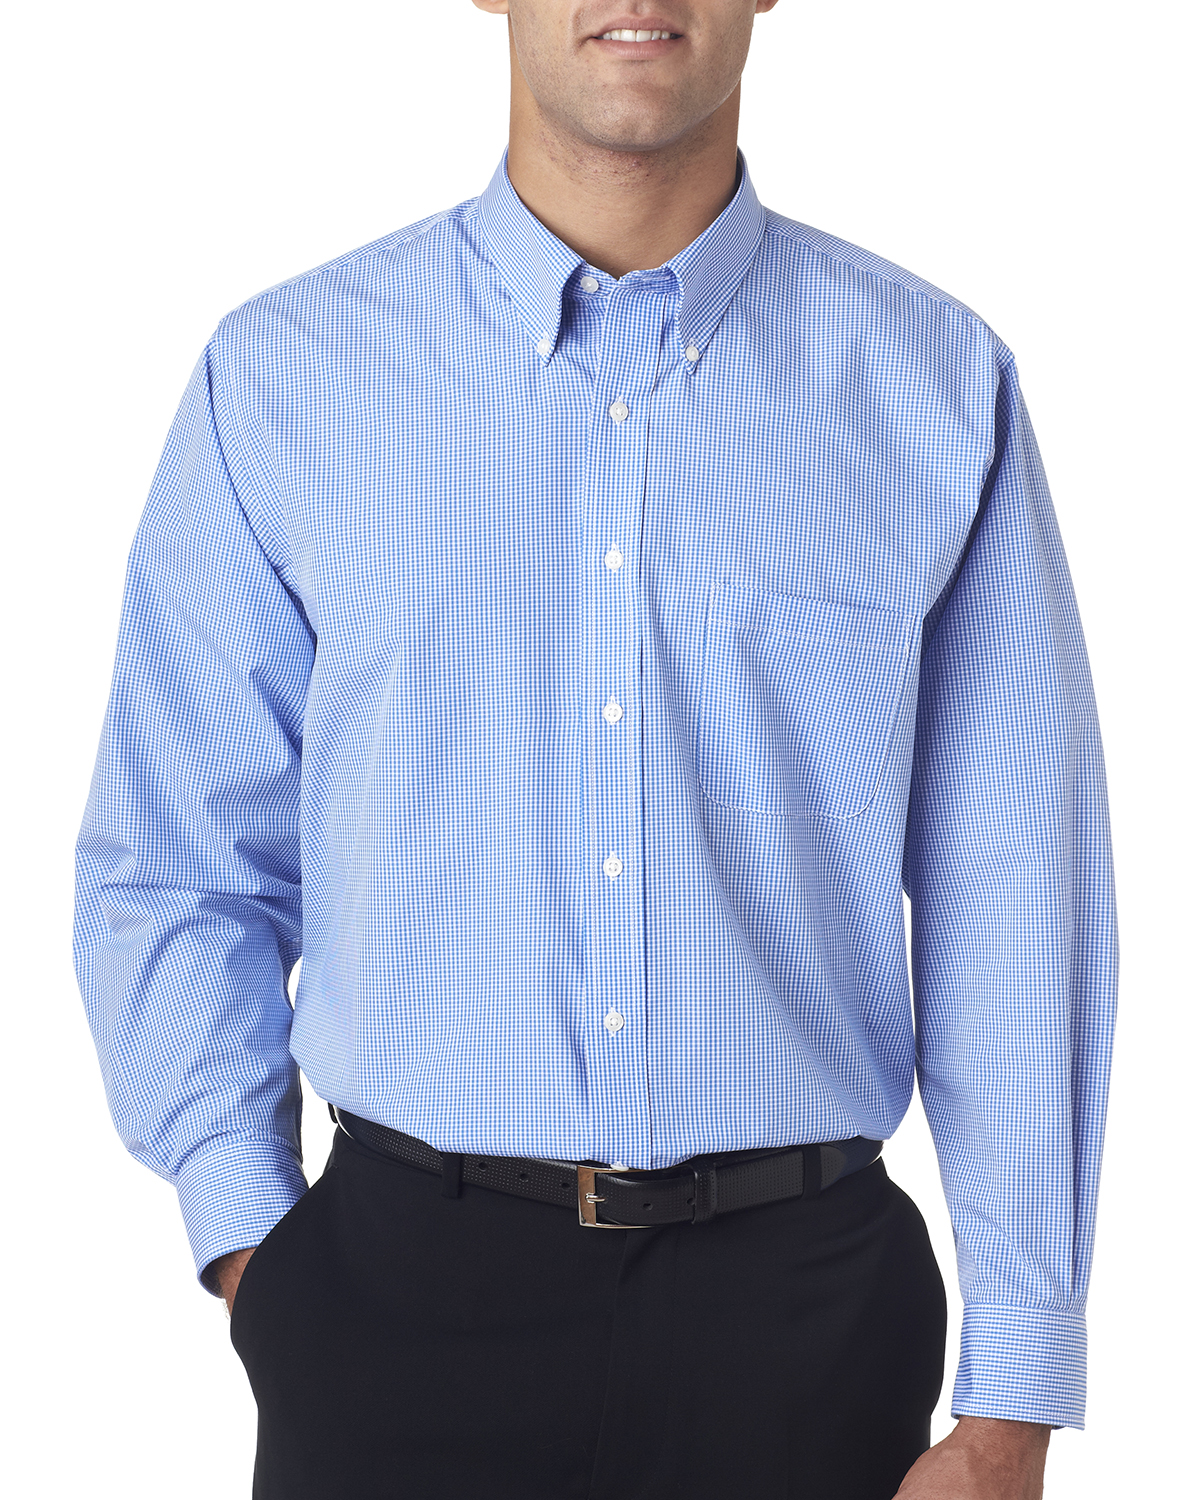 Van Heusen V0225 - Men's Long-Sleeve Yarn-Dyed Gingham ...